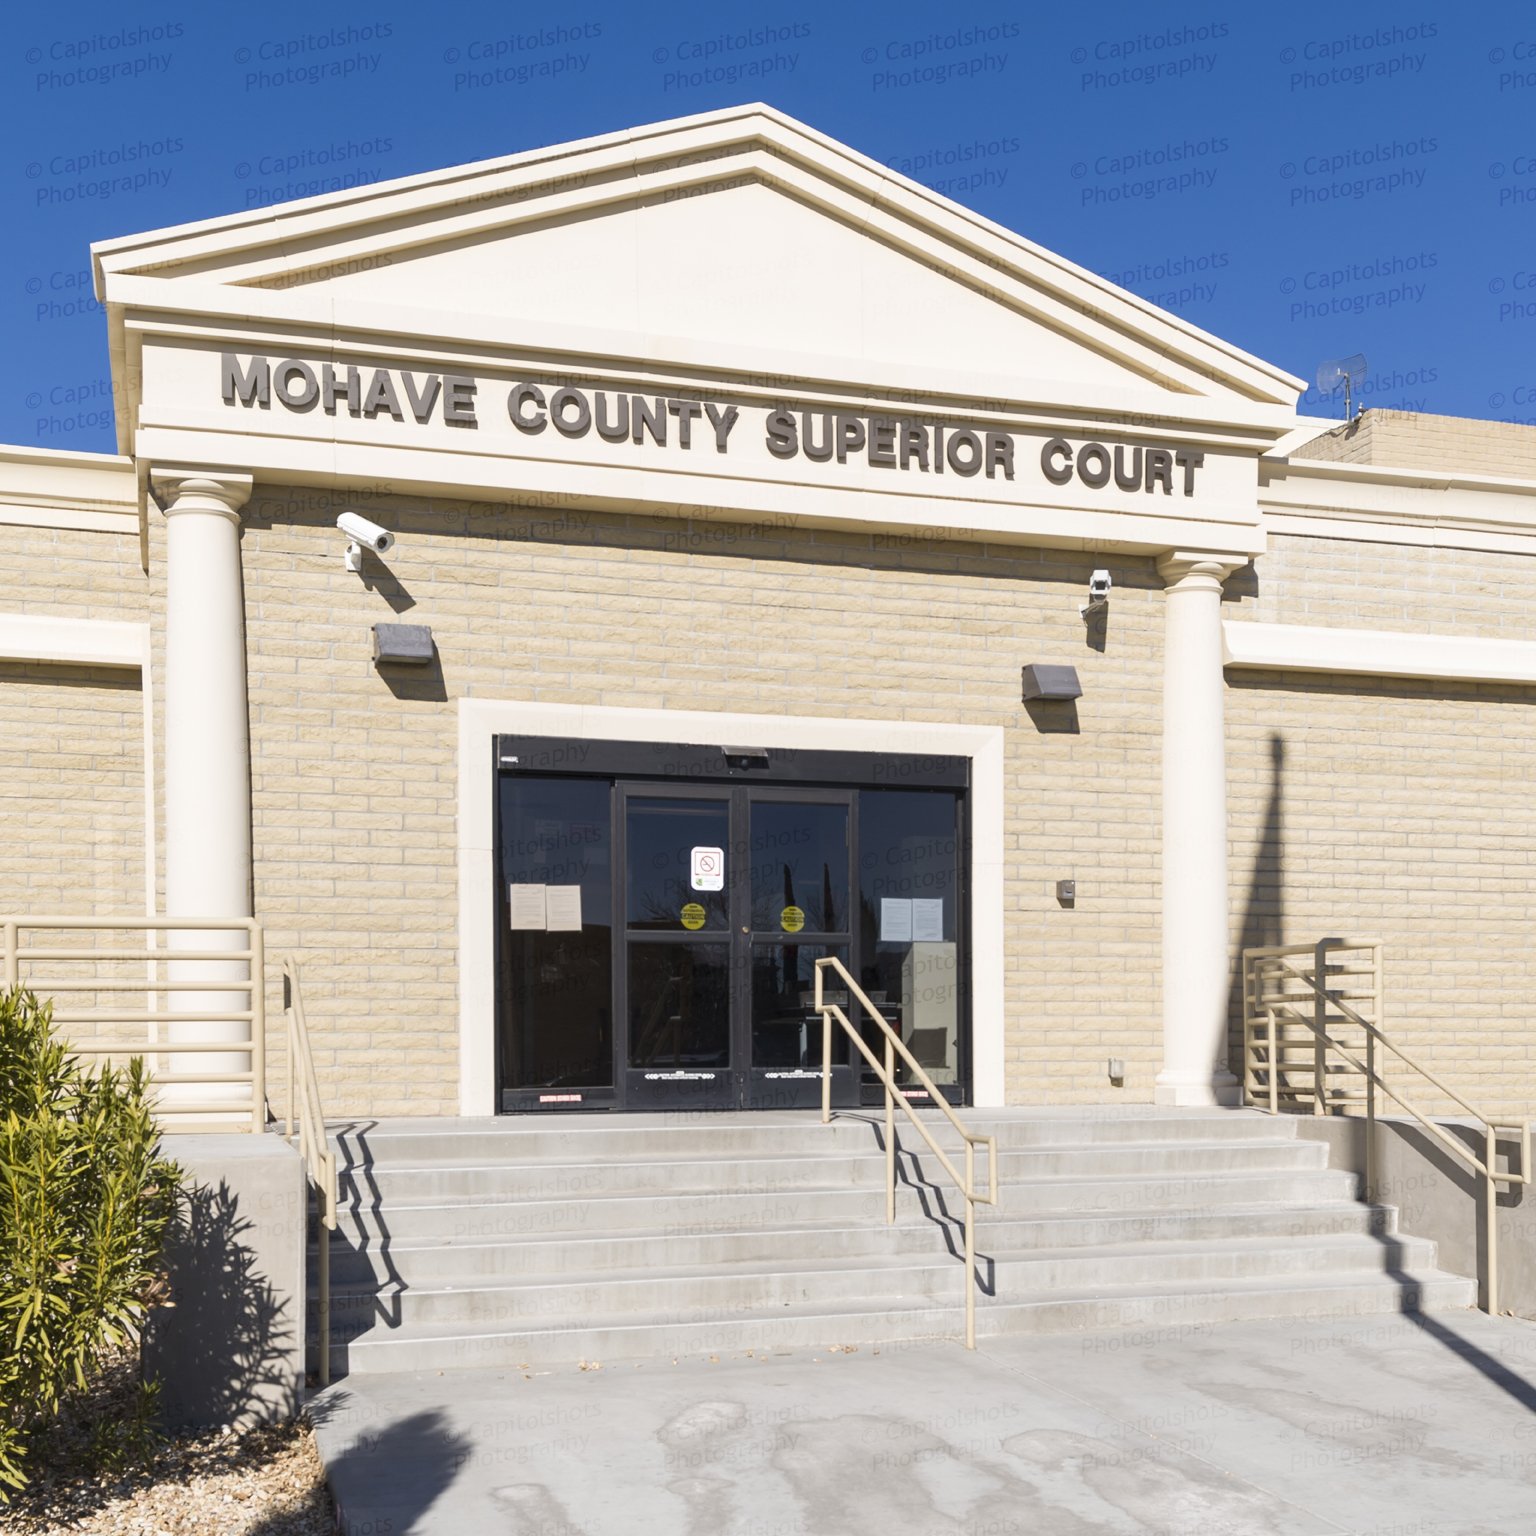 Mohave County Superior Court